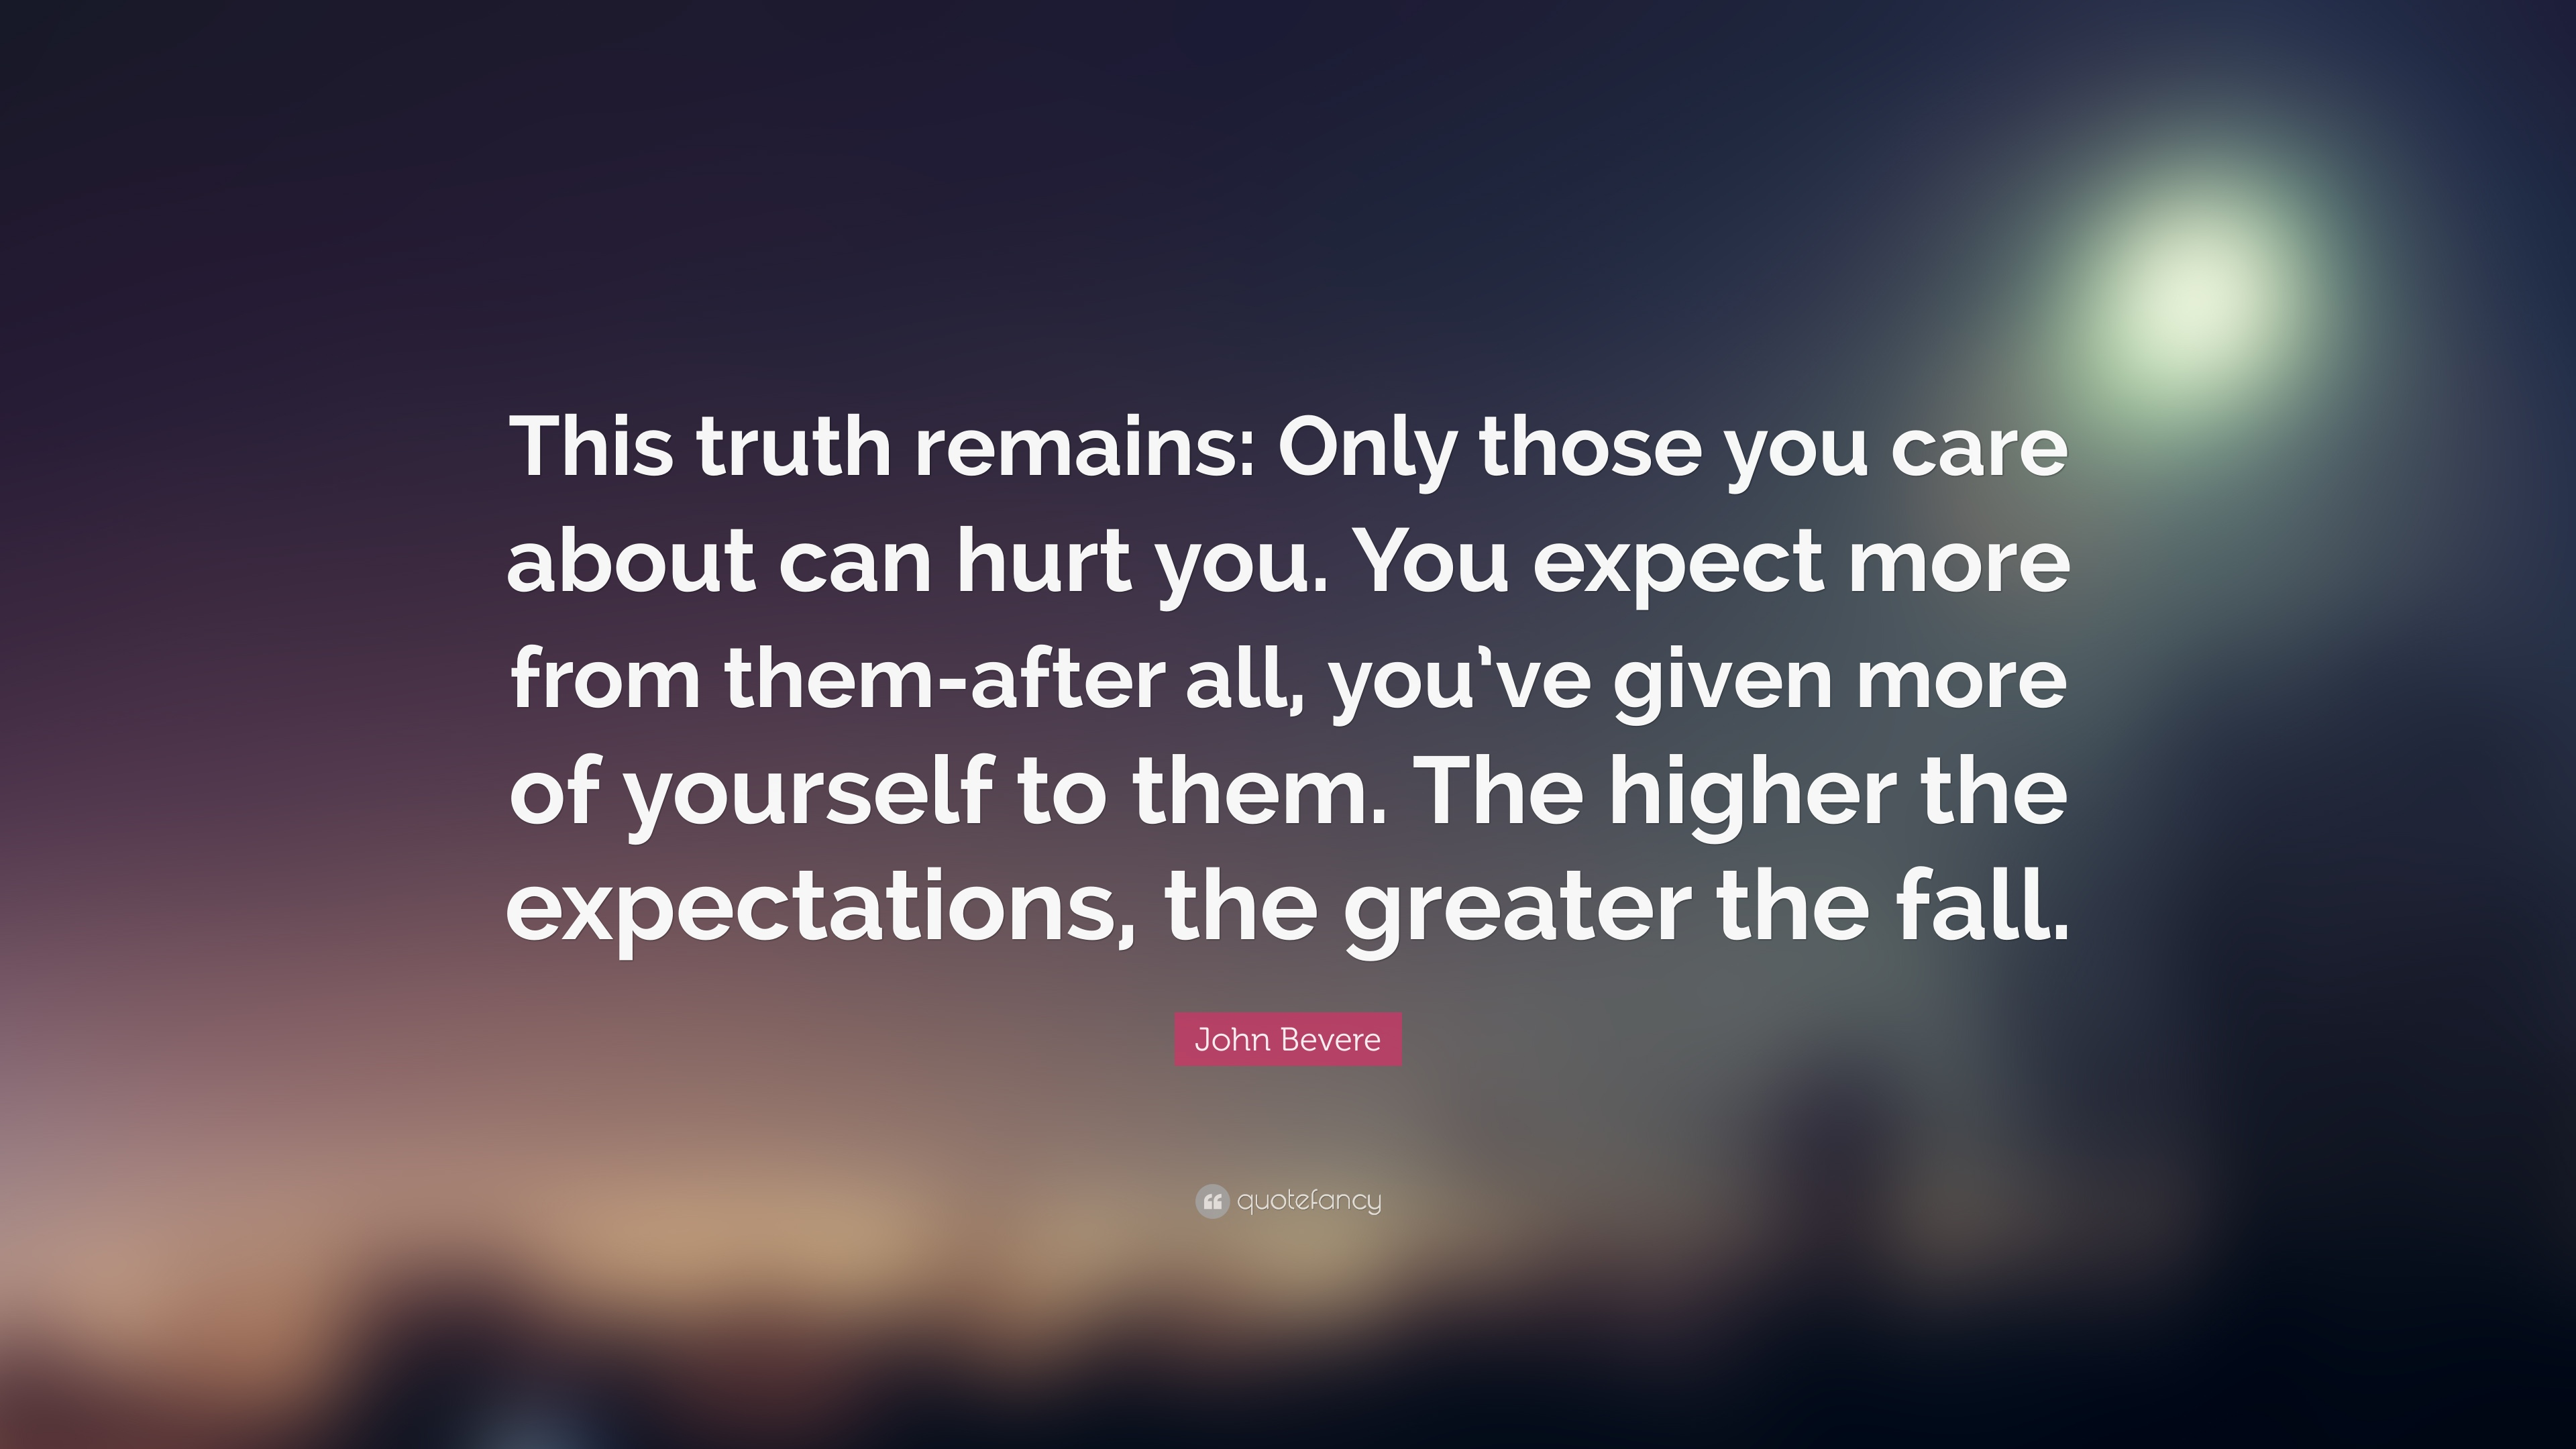 John Bevere Quote This Truth Remains Only Those You Care About Can Hurt You You Expect More From Them After All You Ve Given More Of Yo 7 Wallpapers Quotefancy